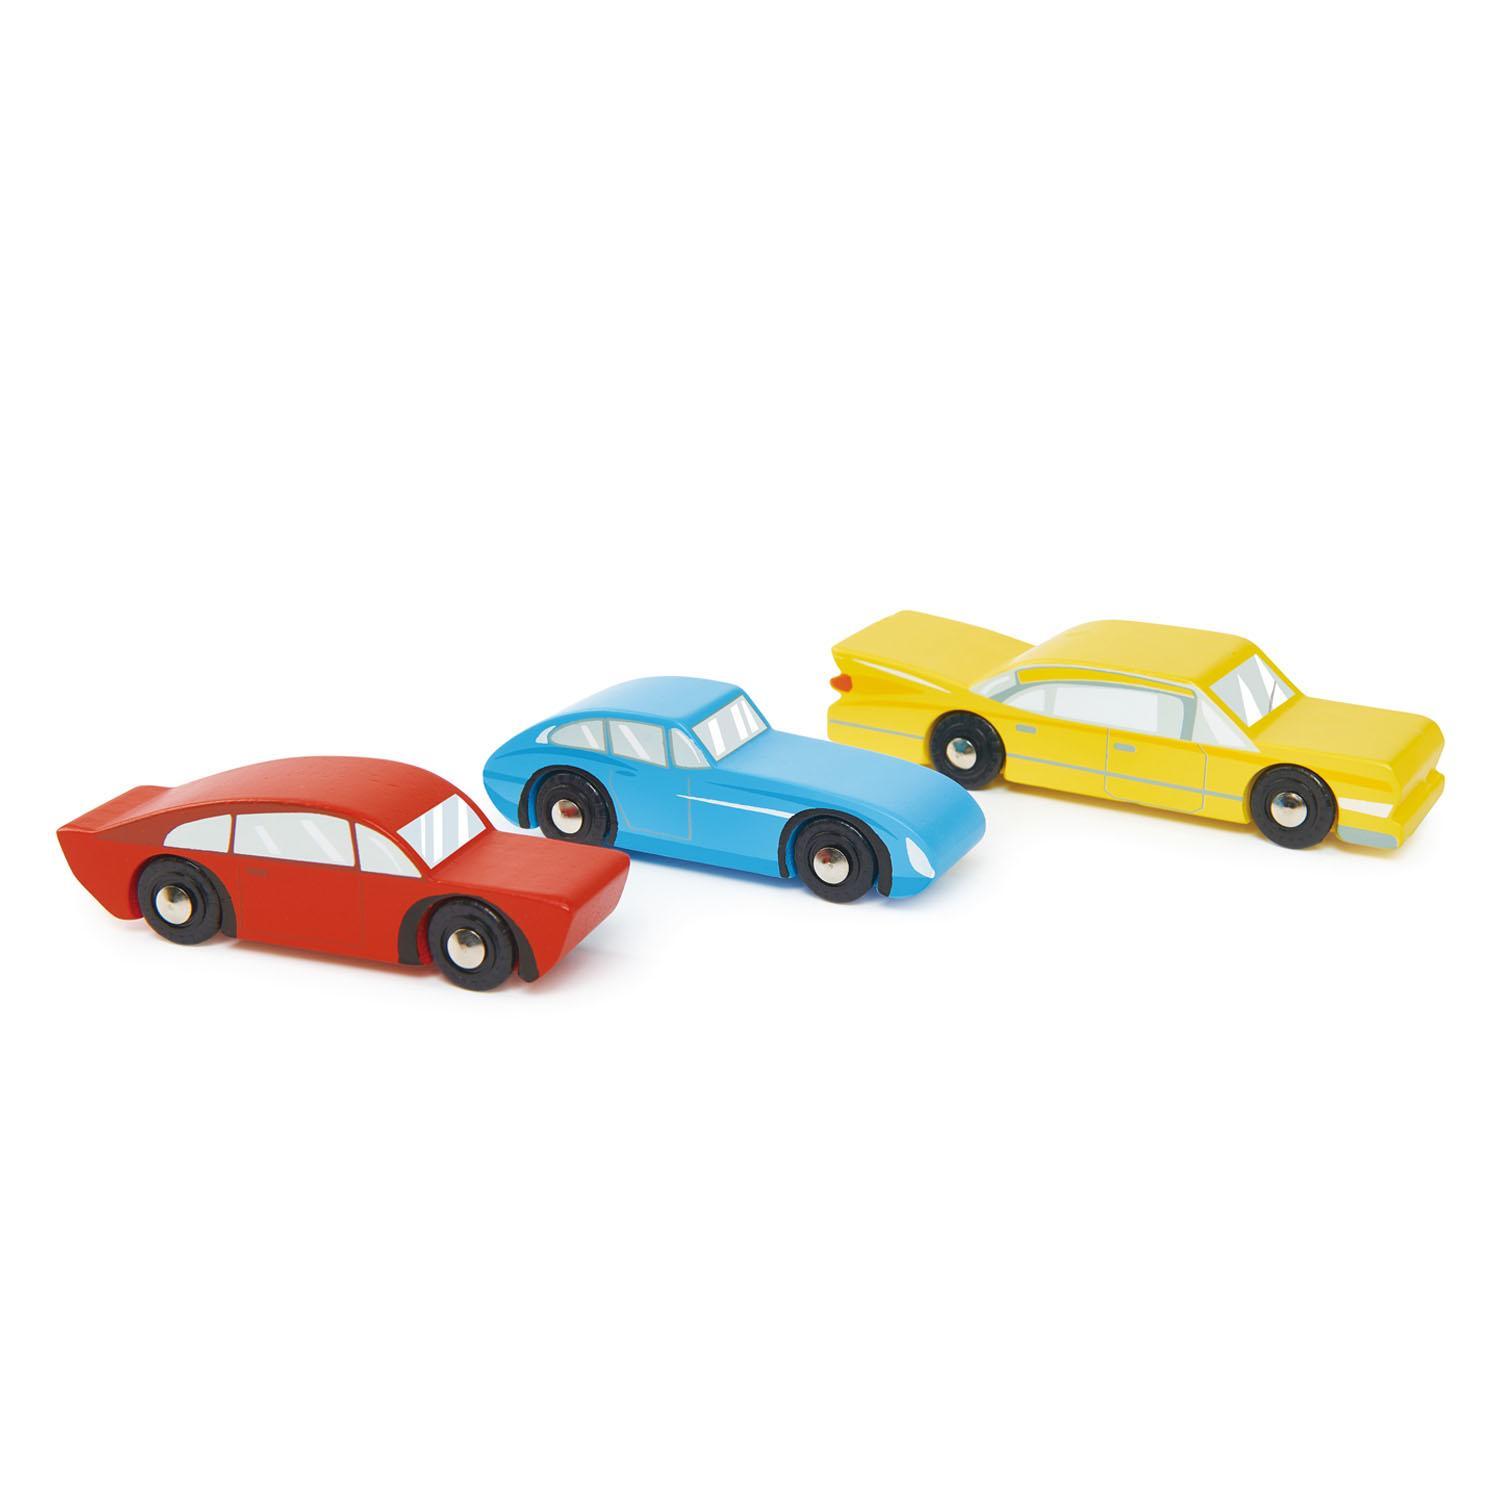 New Stylish Wooden Retro Toy Cars - Set of 3 in Red, Blue and Yellow #3